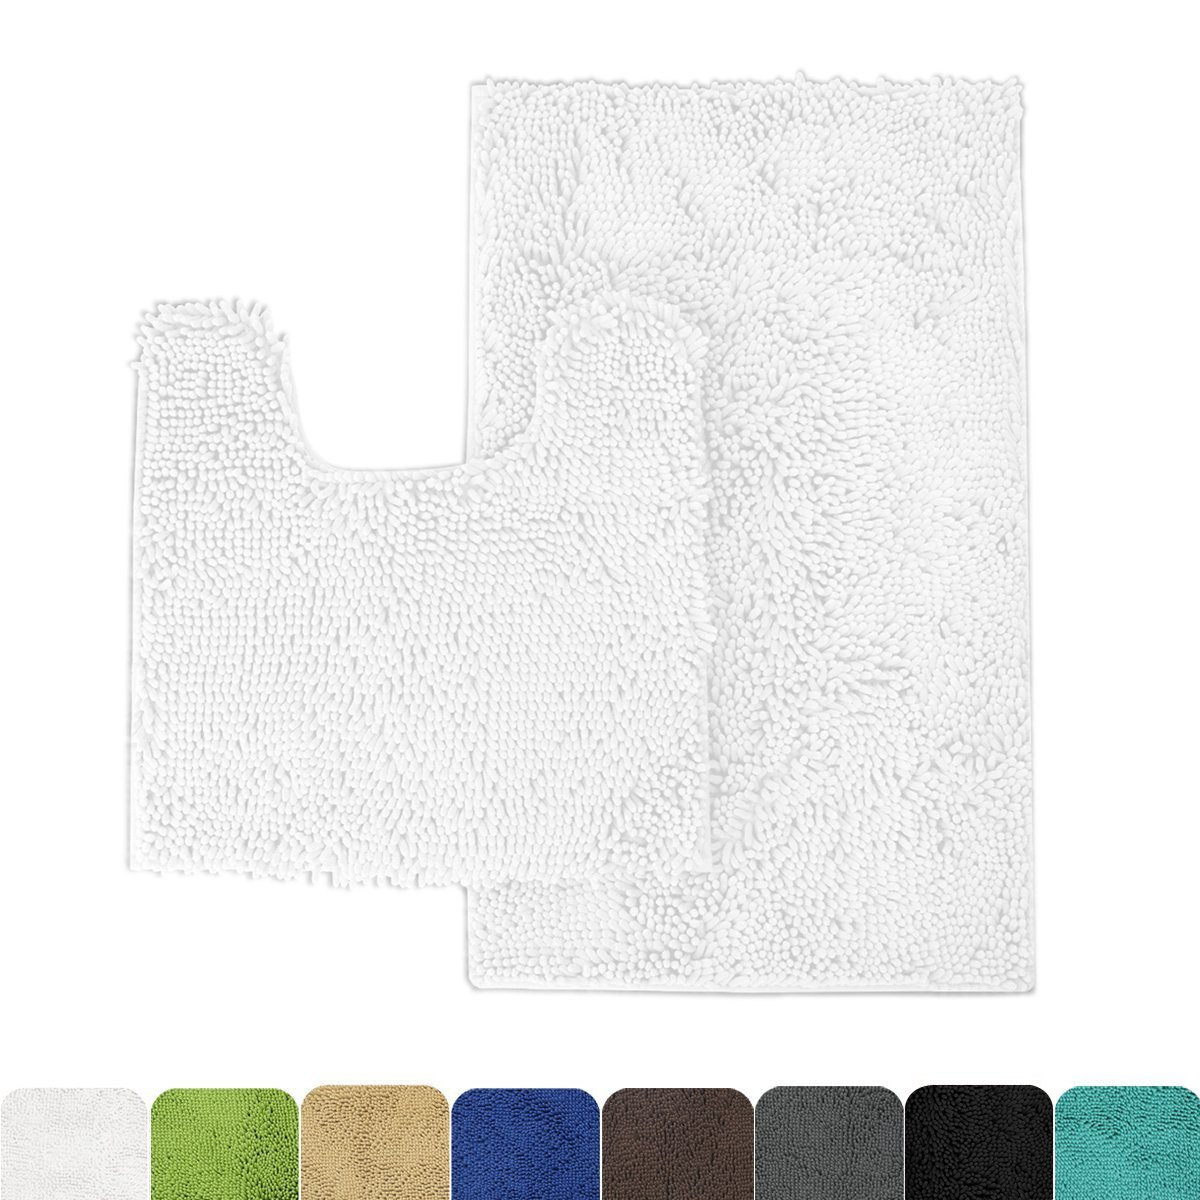 MAYSHINE 2 Pack (20x31/20x20U inches) Non-slip Bathroom Rug toilet Shag Shower Mat Machine-washable Bath mats with Water Absorbent Soft Microfibers of - White